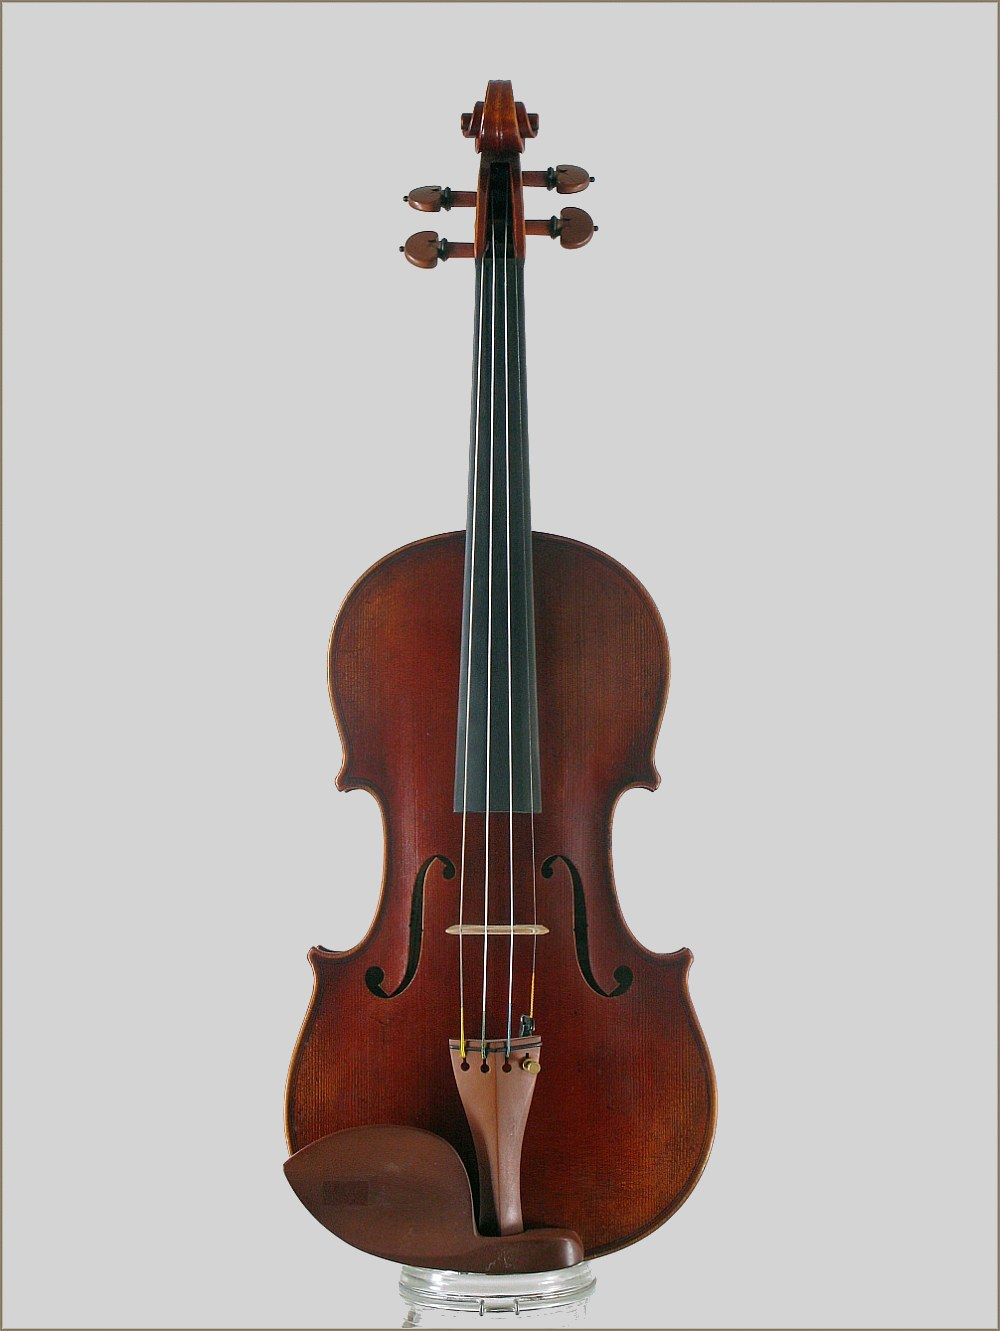 Sielam appassionato model violins 4 4 violas 16 for Soil 1714 stradivarius